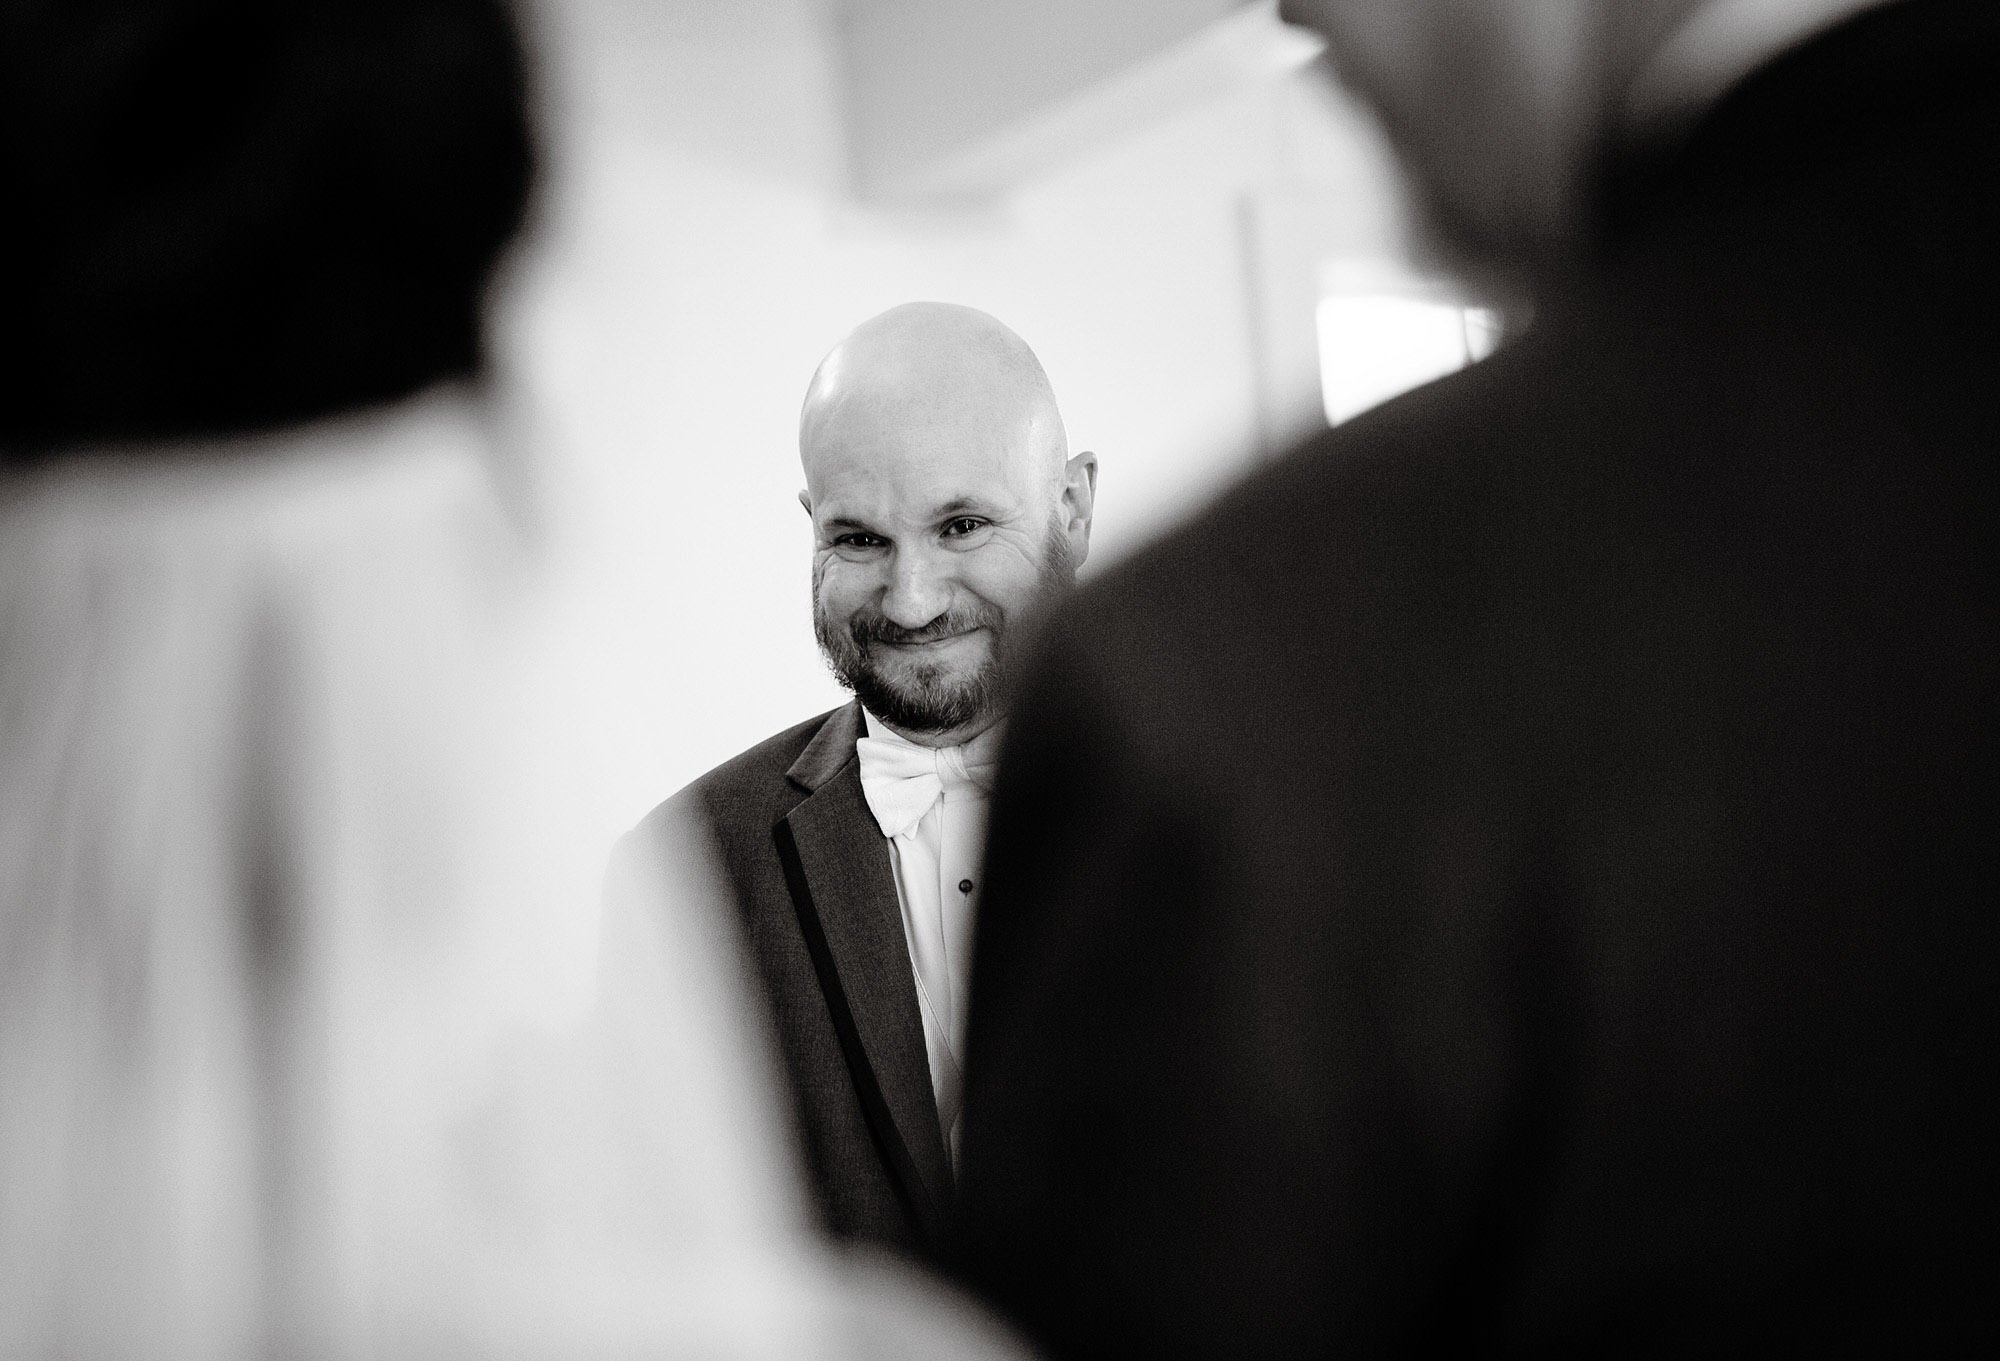 The groom smiles at his bride during the wedding ceremony at the Meeting House at Olde Mistick Village.